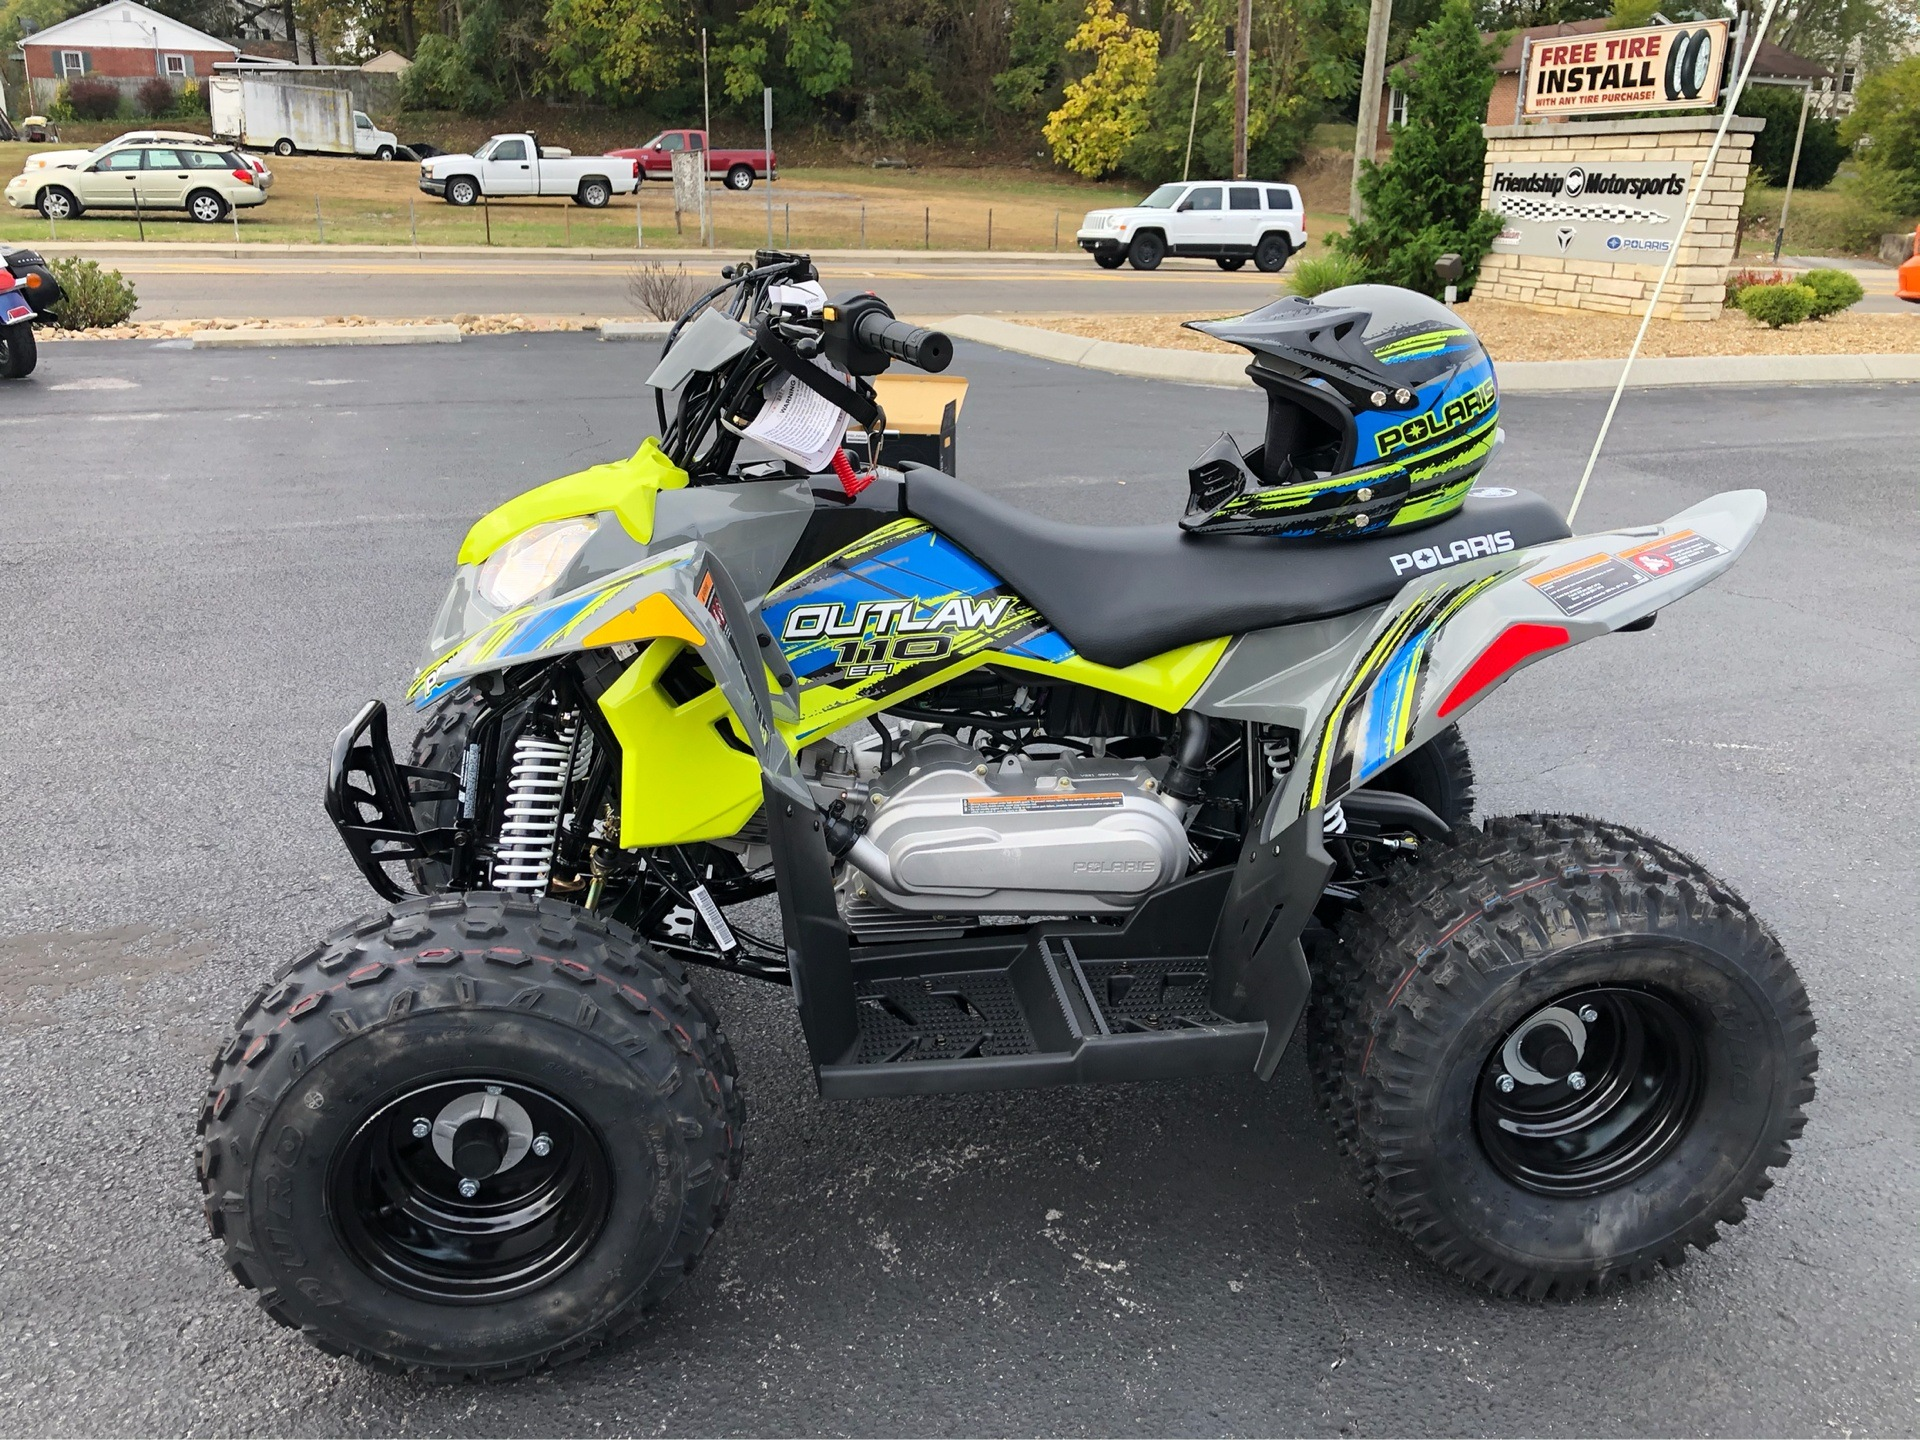 2020 Polaris Outlaw 110 in Bristol, Virginia - Photo 3